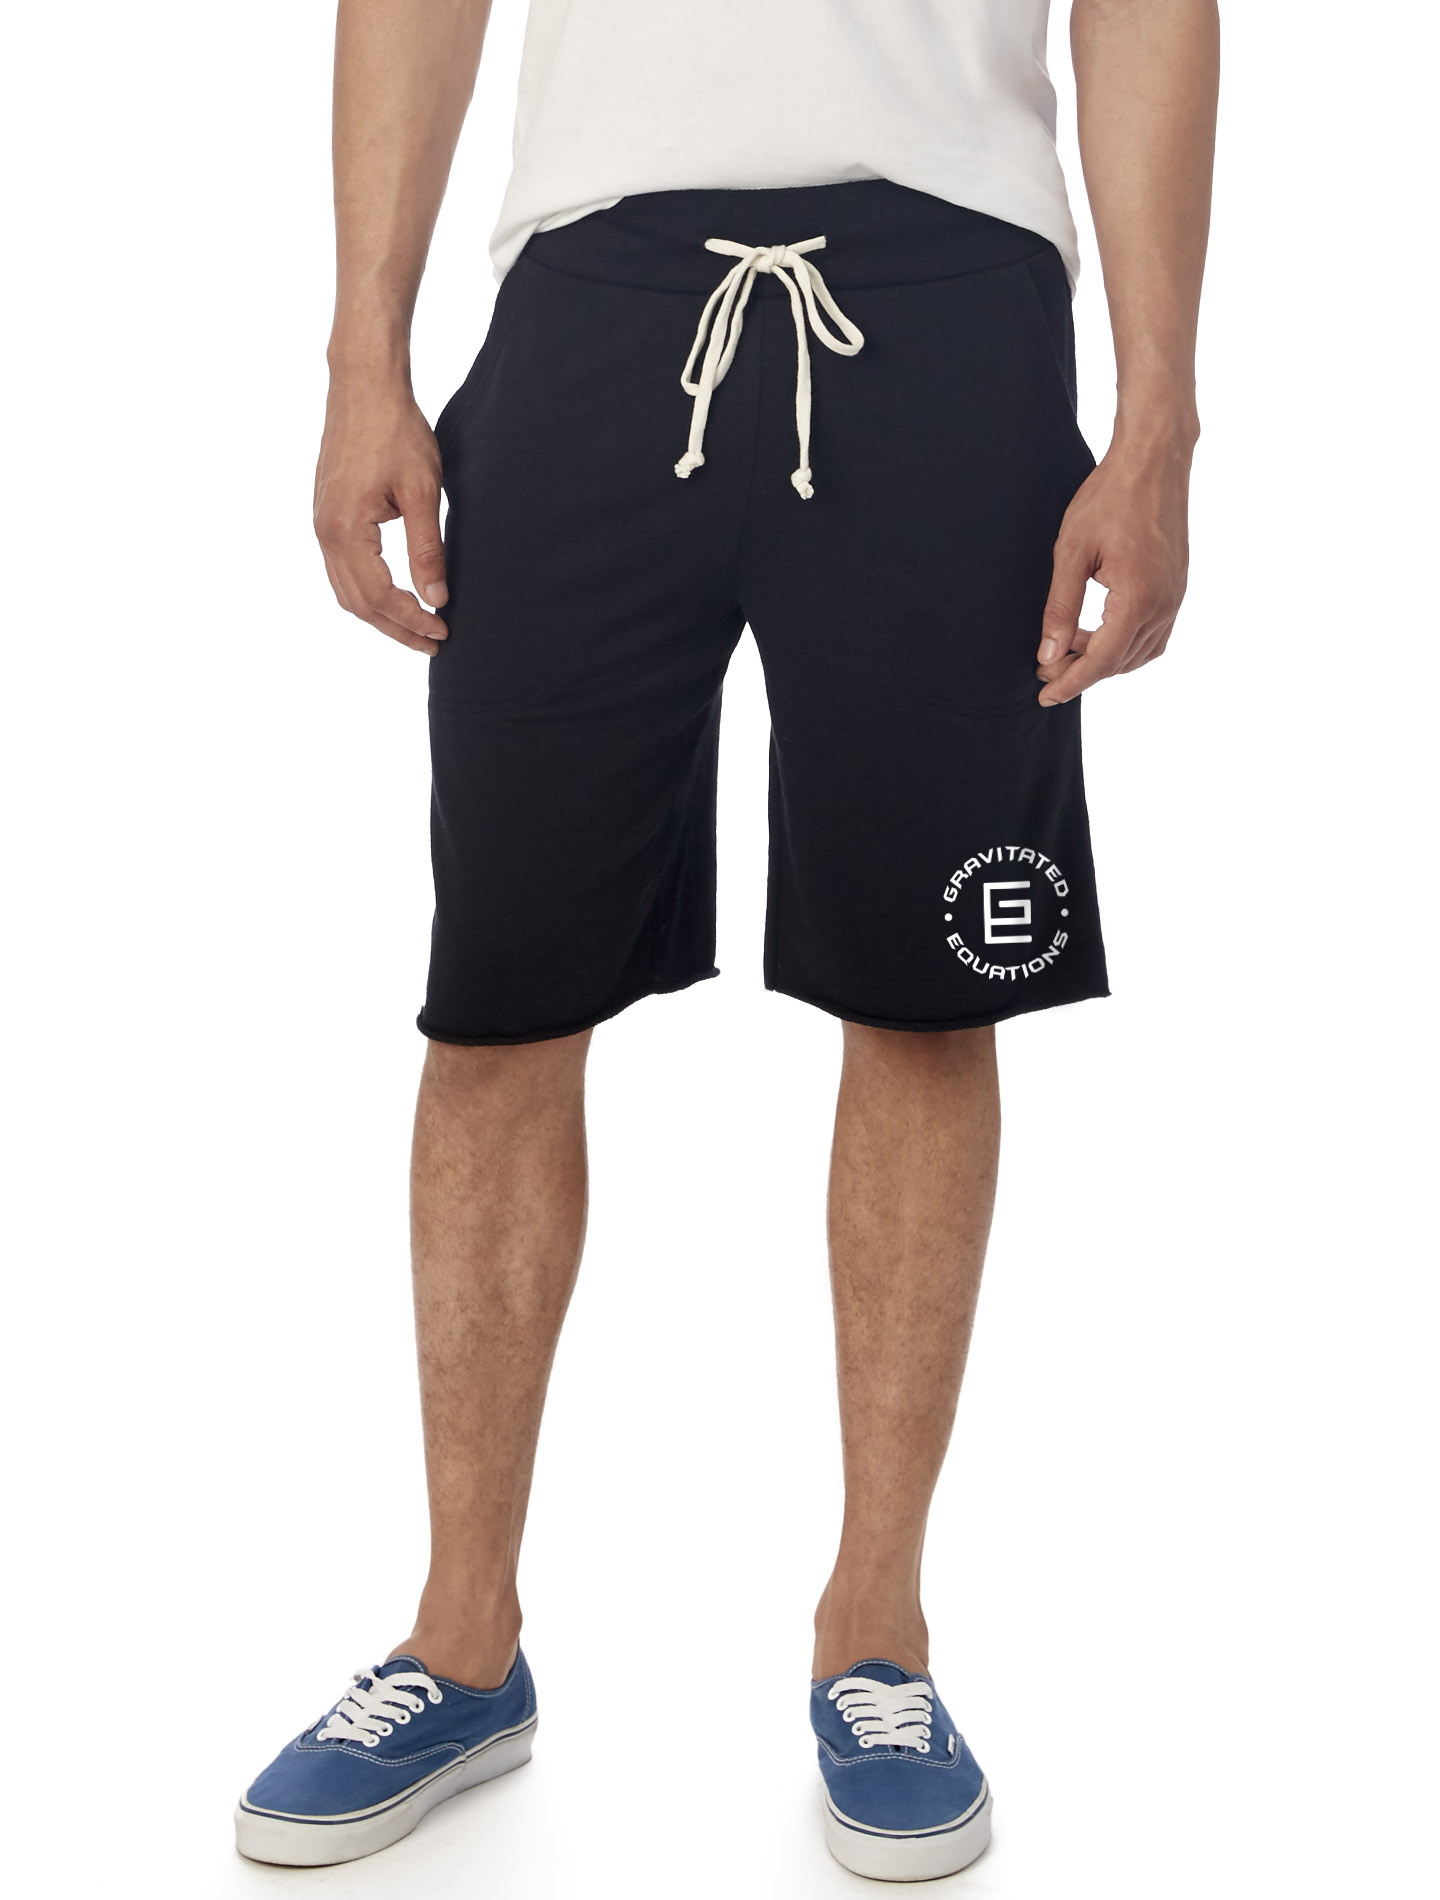 Circle French Terry Shorts (Black)